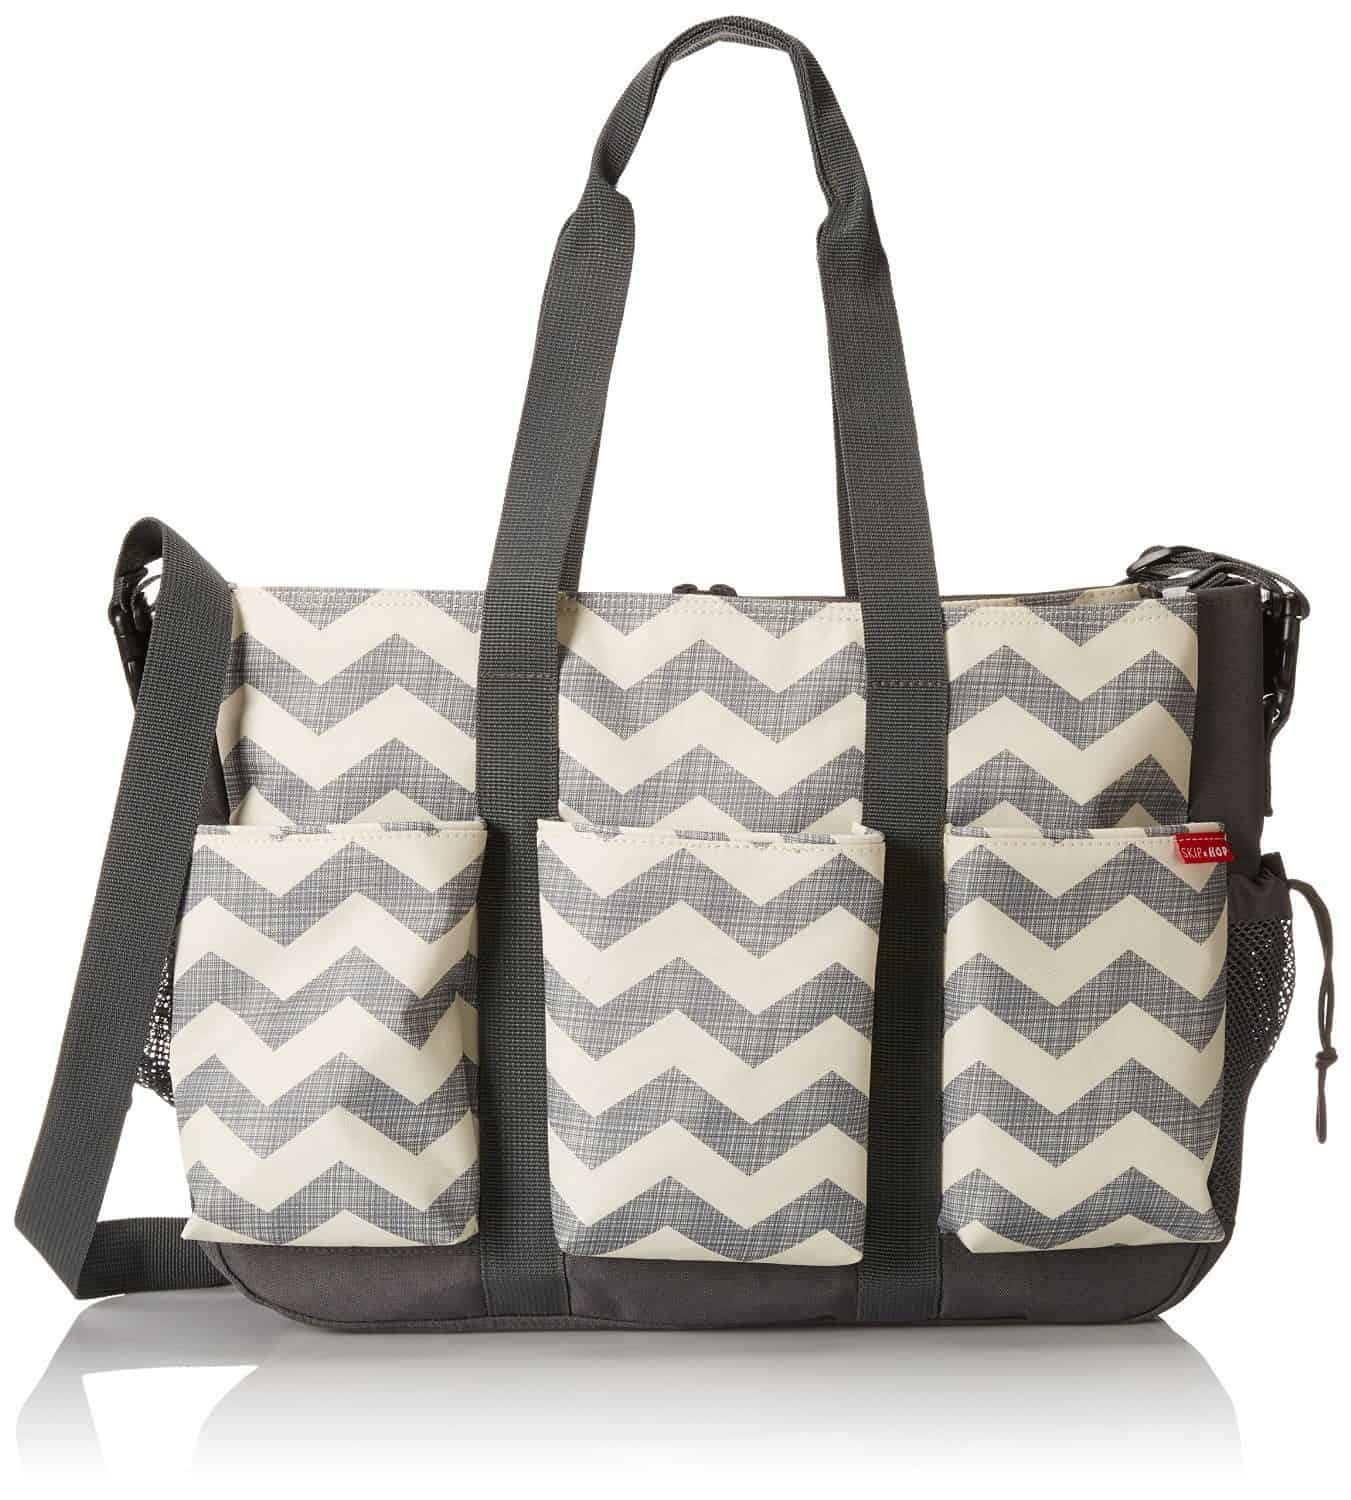 the best diaper bags for twins 2016 maternity glow guide. Black Bedroom Furniture Sets. Home Design Ideas